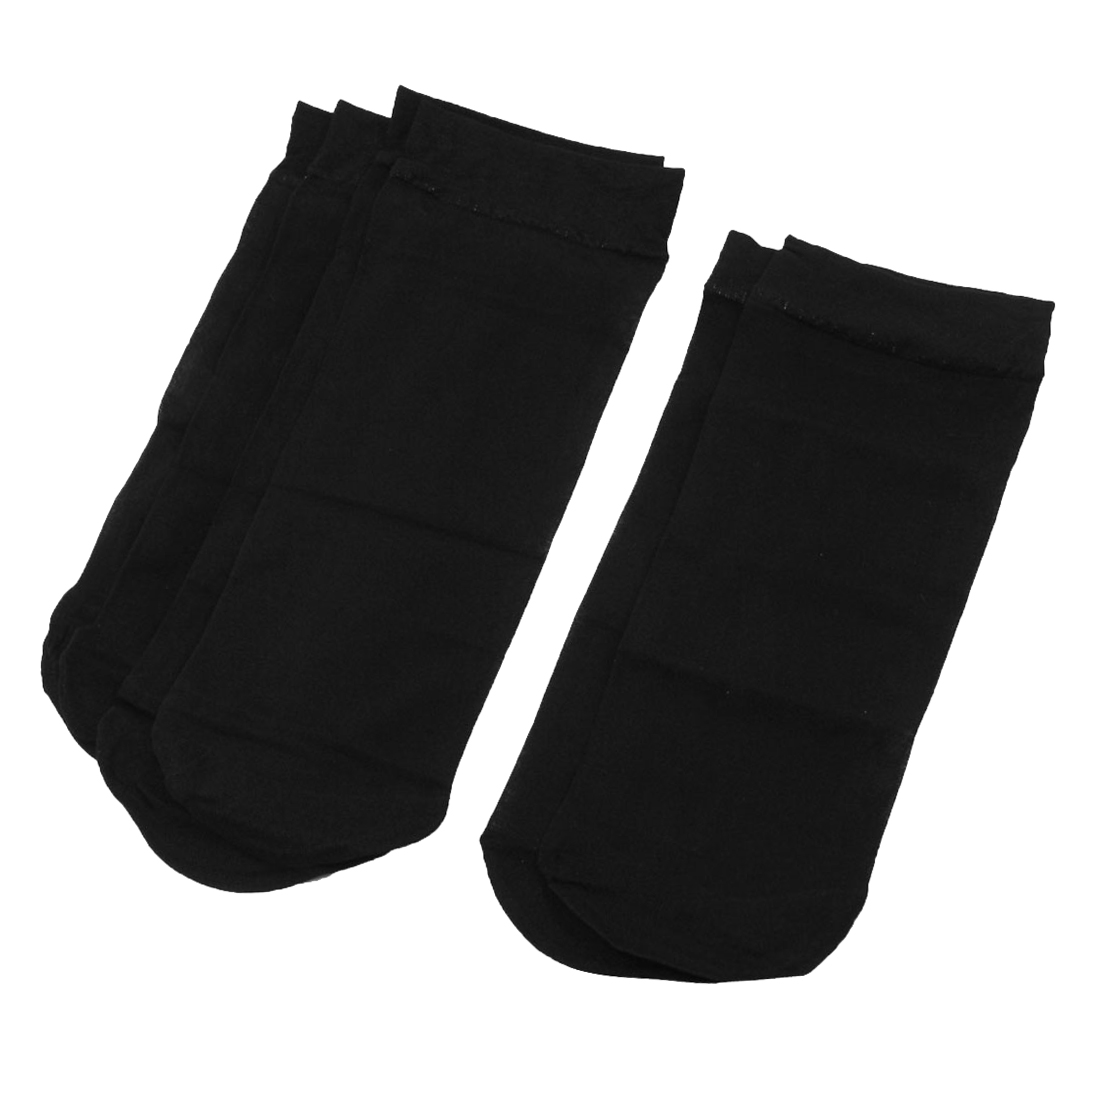 3 Pairs Black Summer Elastic Cuff Ankle High Sheer Socks for Lady